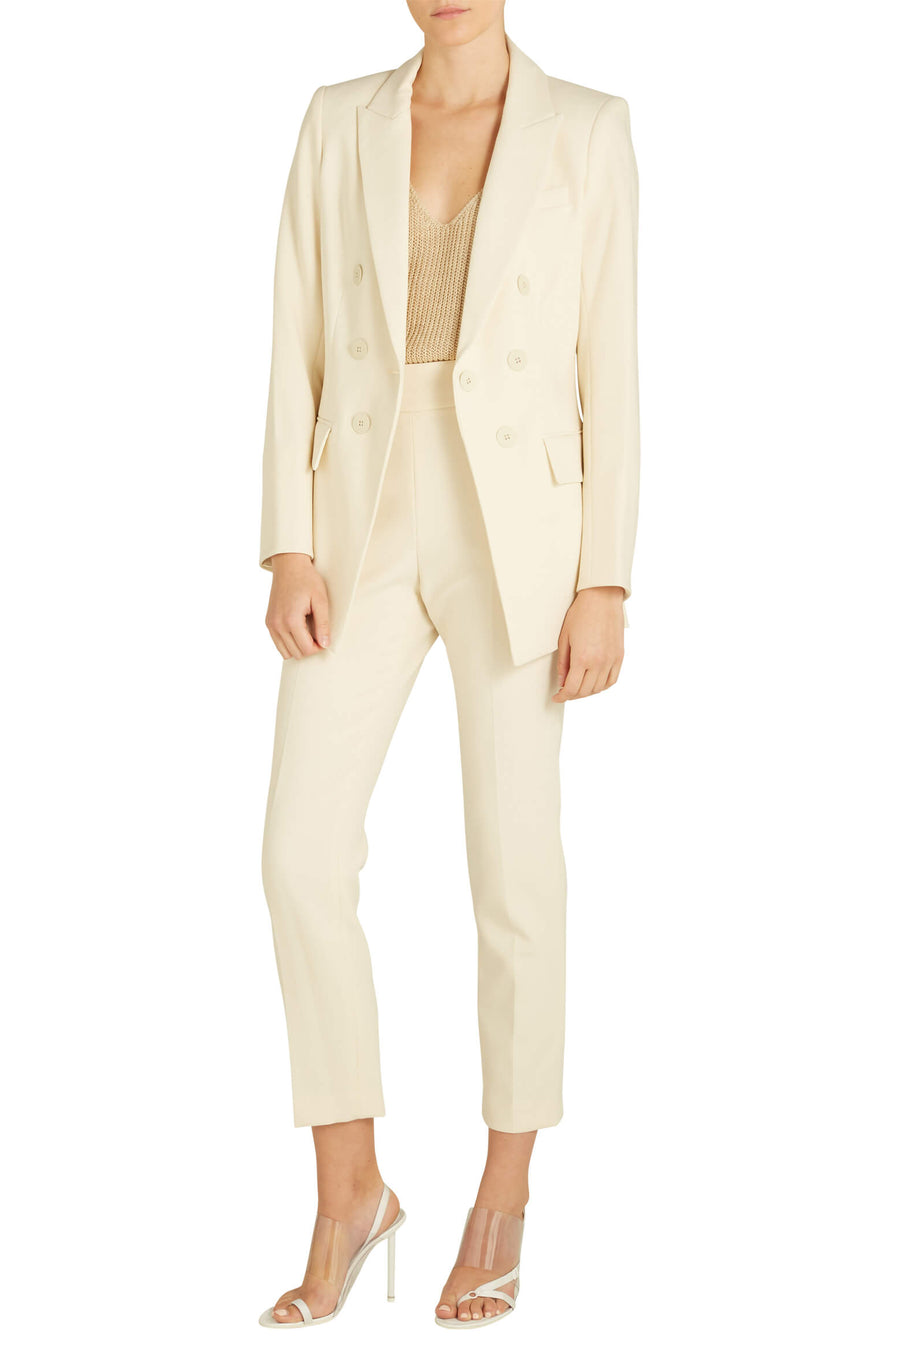 Veronica Beard Matteo Dickey Blazer in Ivory from The New Trend